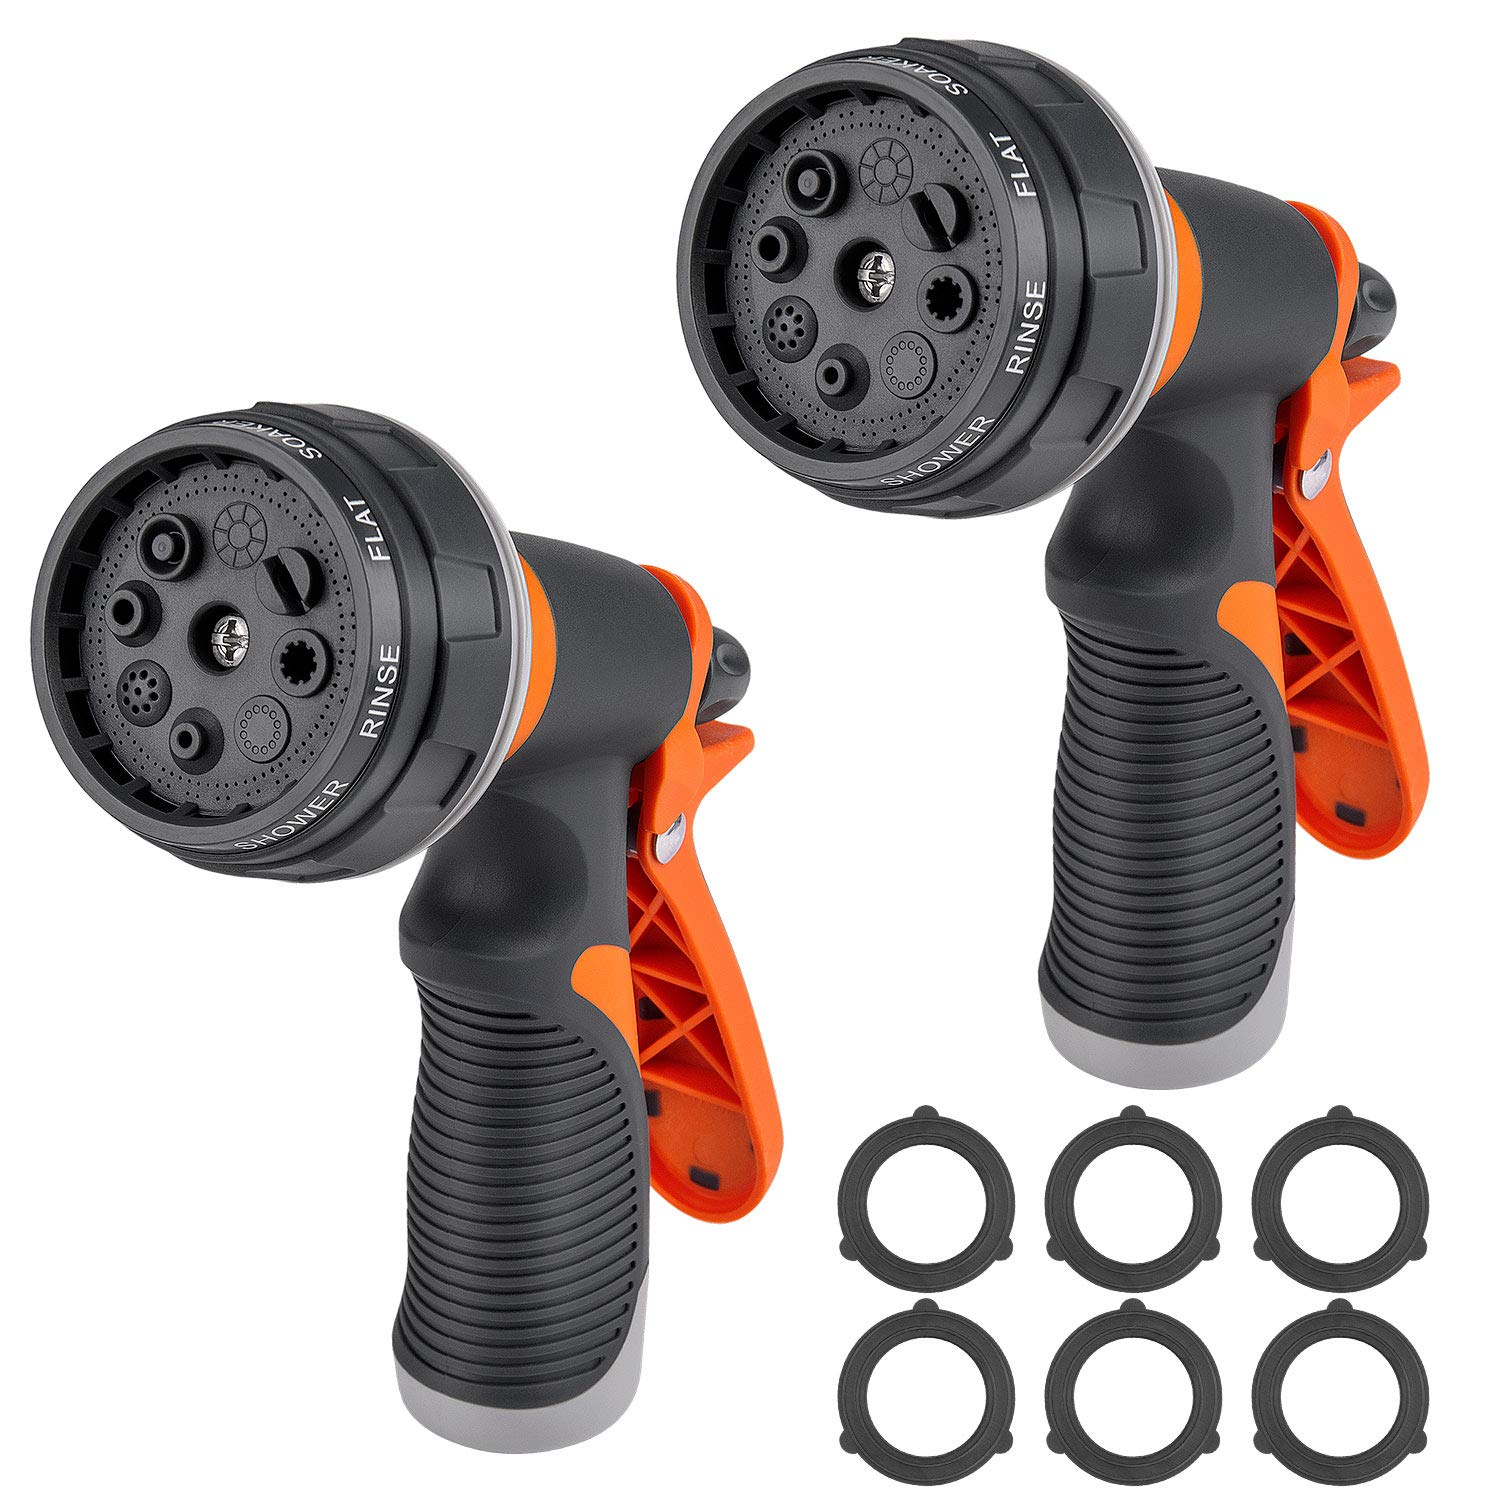 Awpeye 2 Packs Water Hose Nozzle, Garden Hose Sprayer for Watering Plants, Cleaning House, Washing a Car and with High-Pressure Heavy Duty 8 Pattern